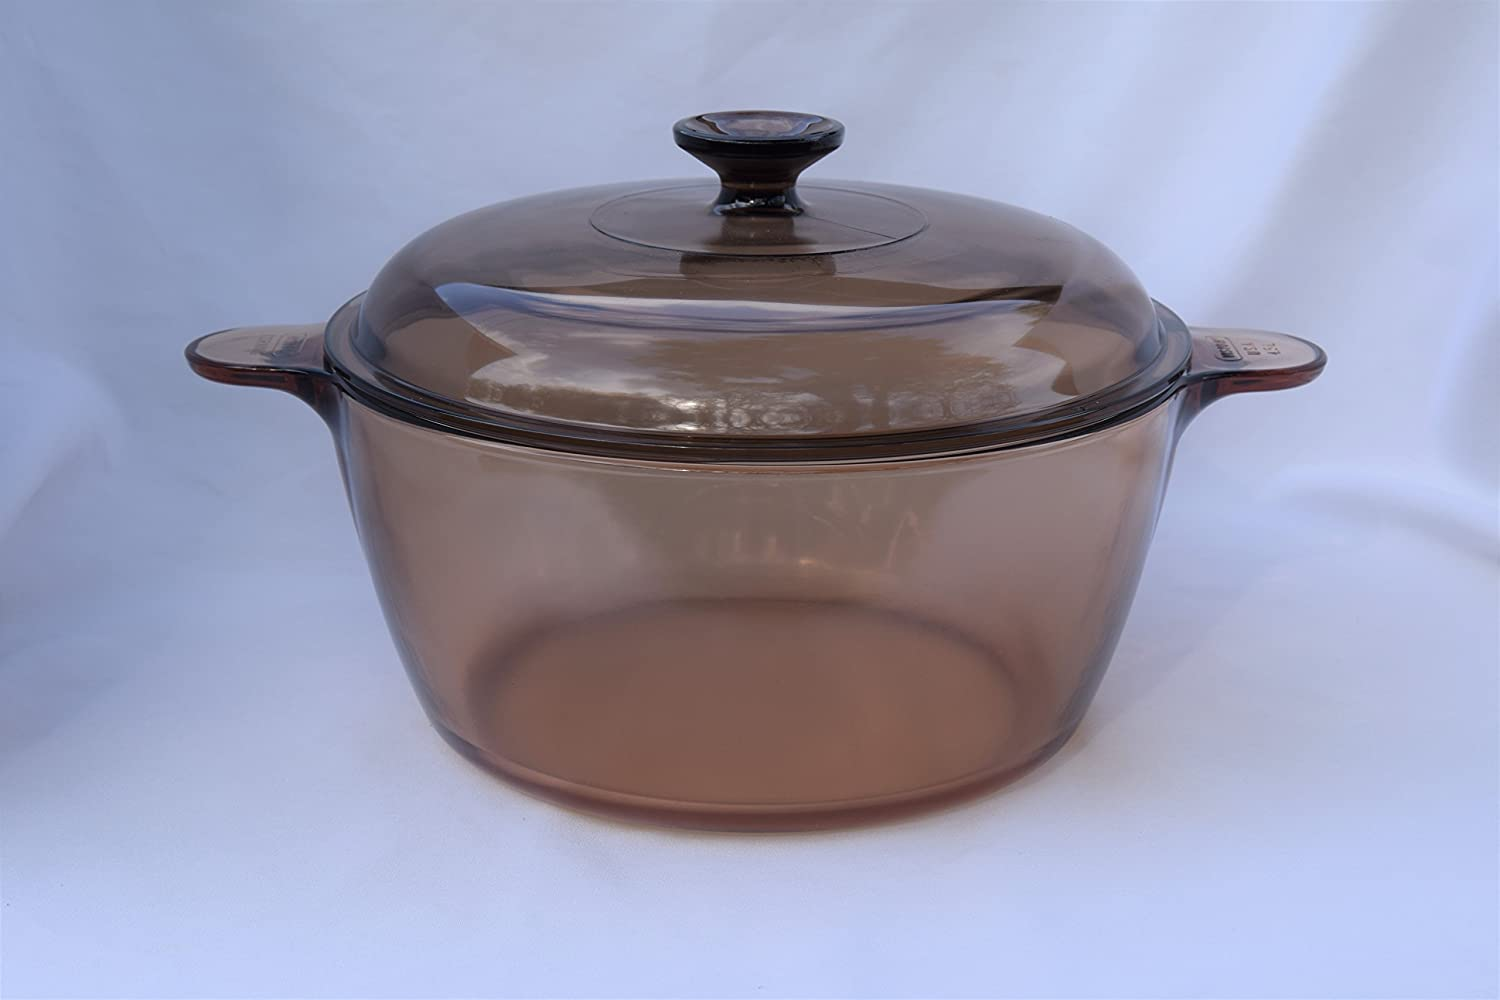 "Vintage Corning Ware Pyrex VISION Visions Visionware AMBER ALL GLASS 4.75 Quart/4.5 Litre 10 1/2"" inch SAUCEPAN DUTCH OVEN ROASTER PAN + Cover/Lid stamped MADE IN USA"